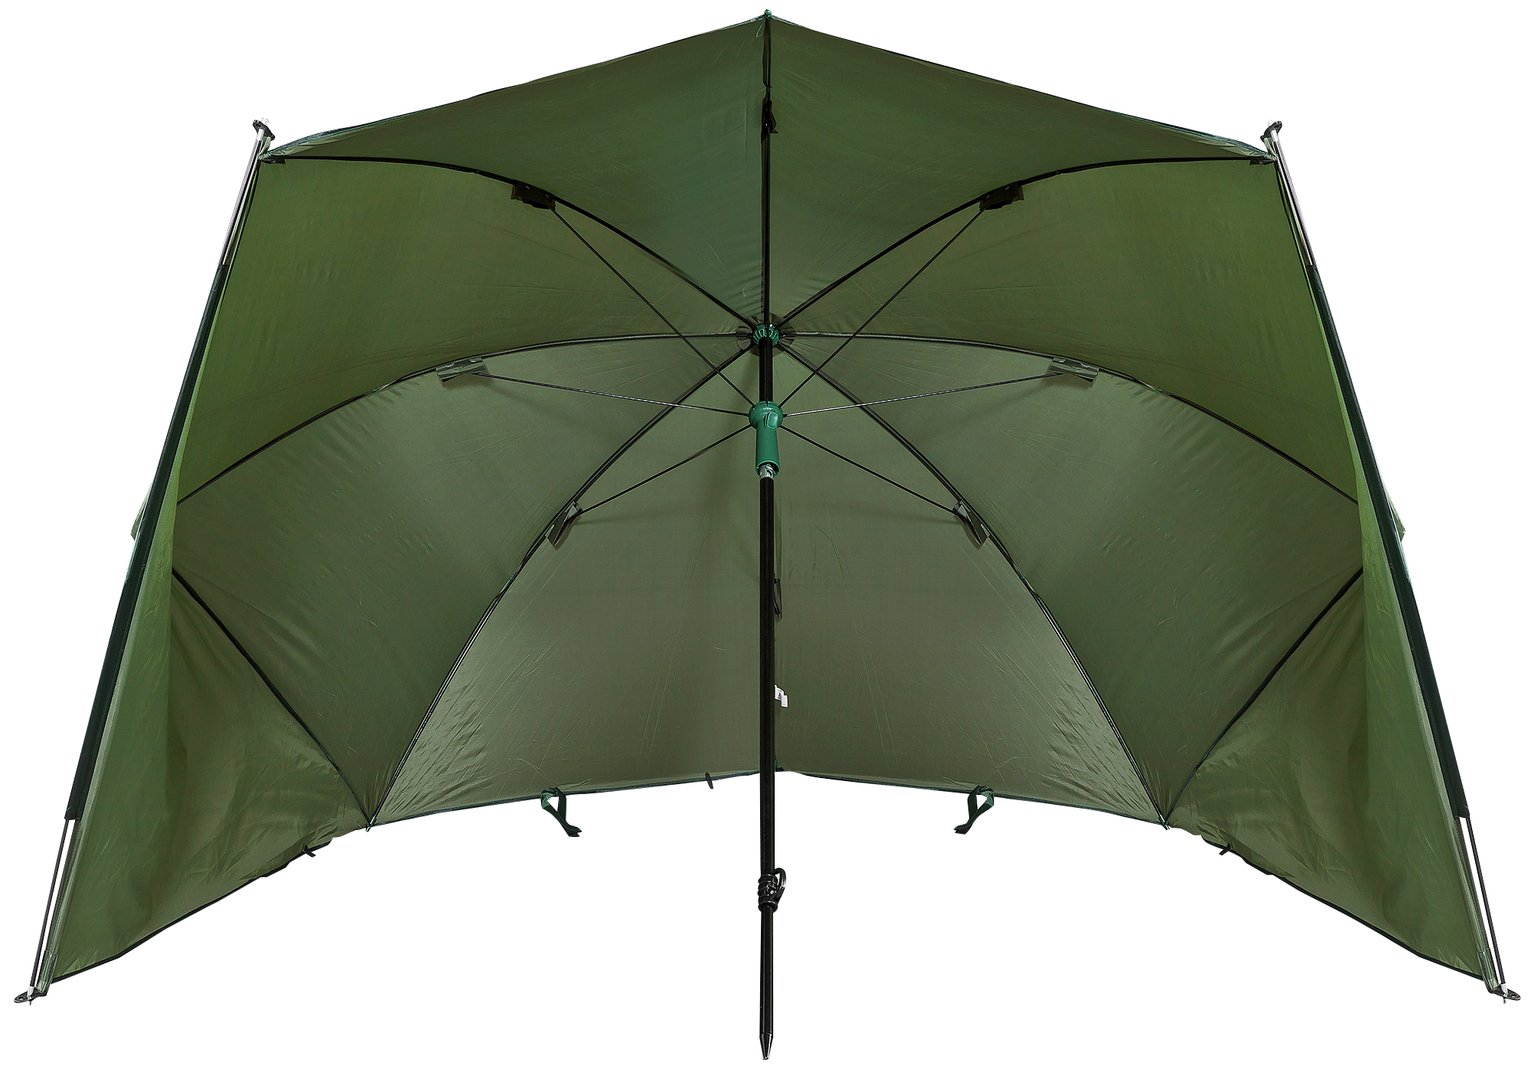 fishing chair argos bedroom and ottoman accessories keenets bivvy shelter umbrella